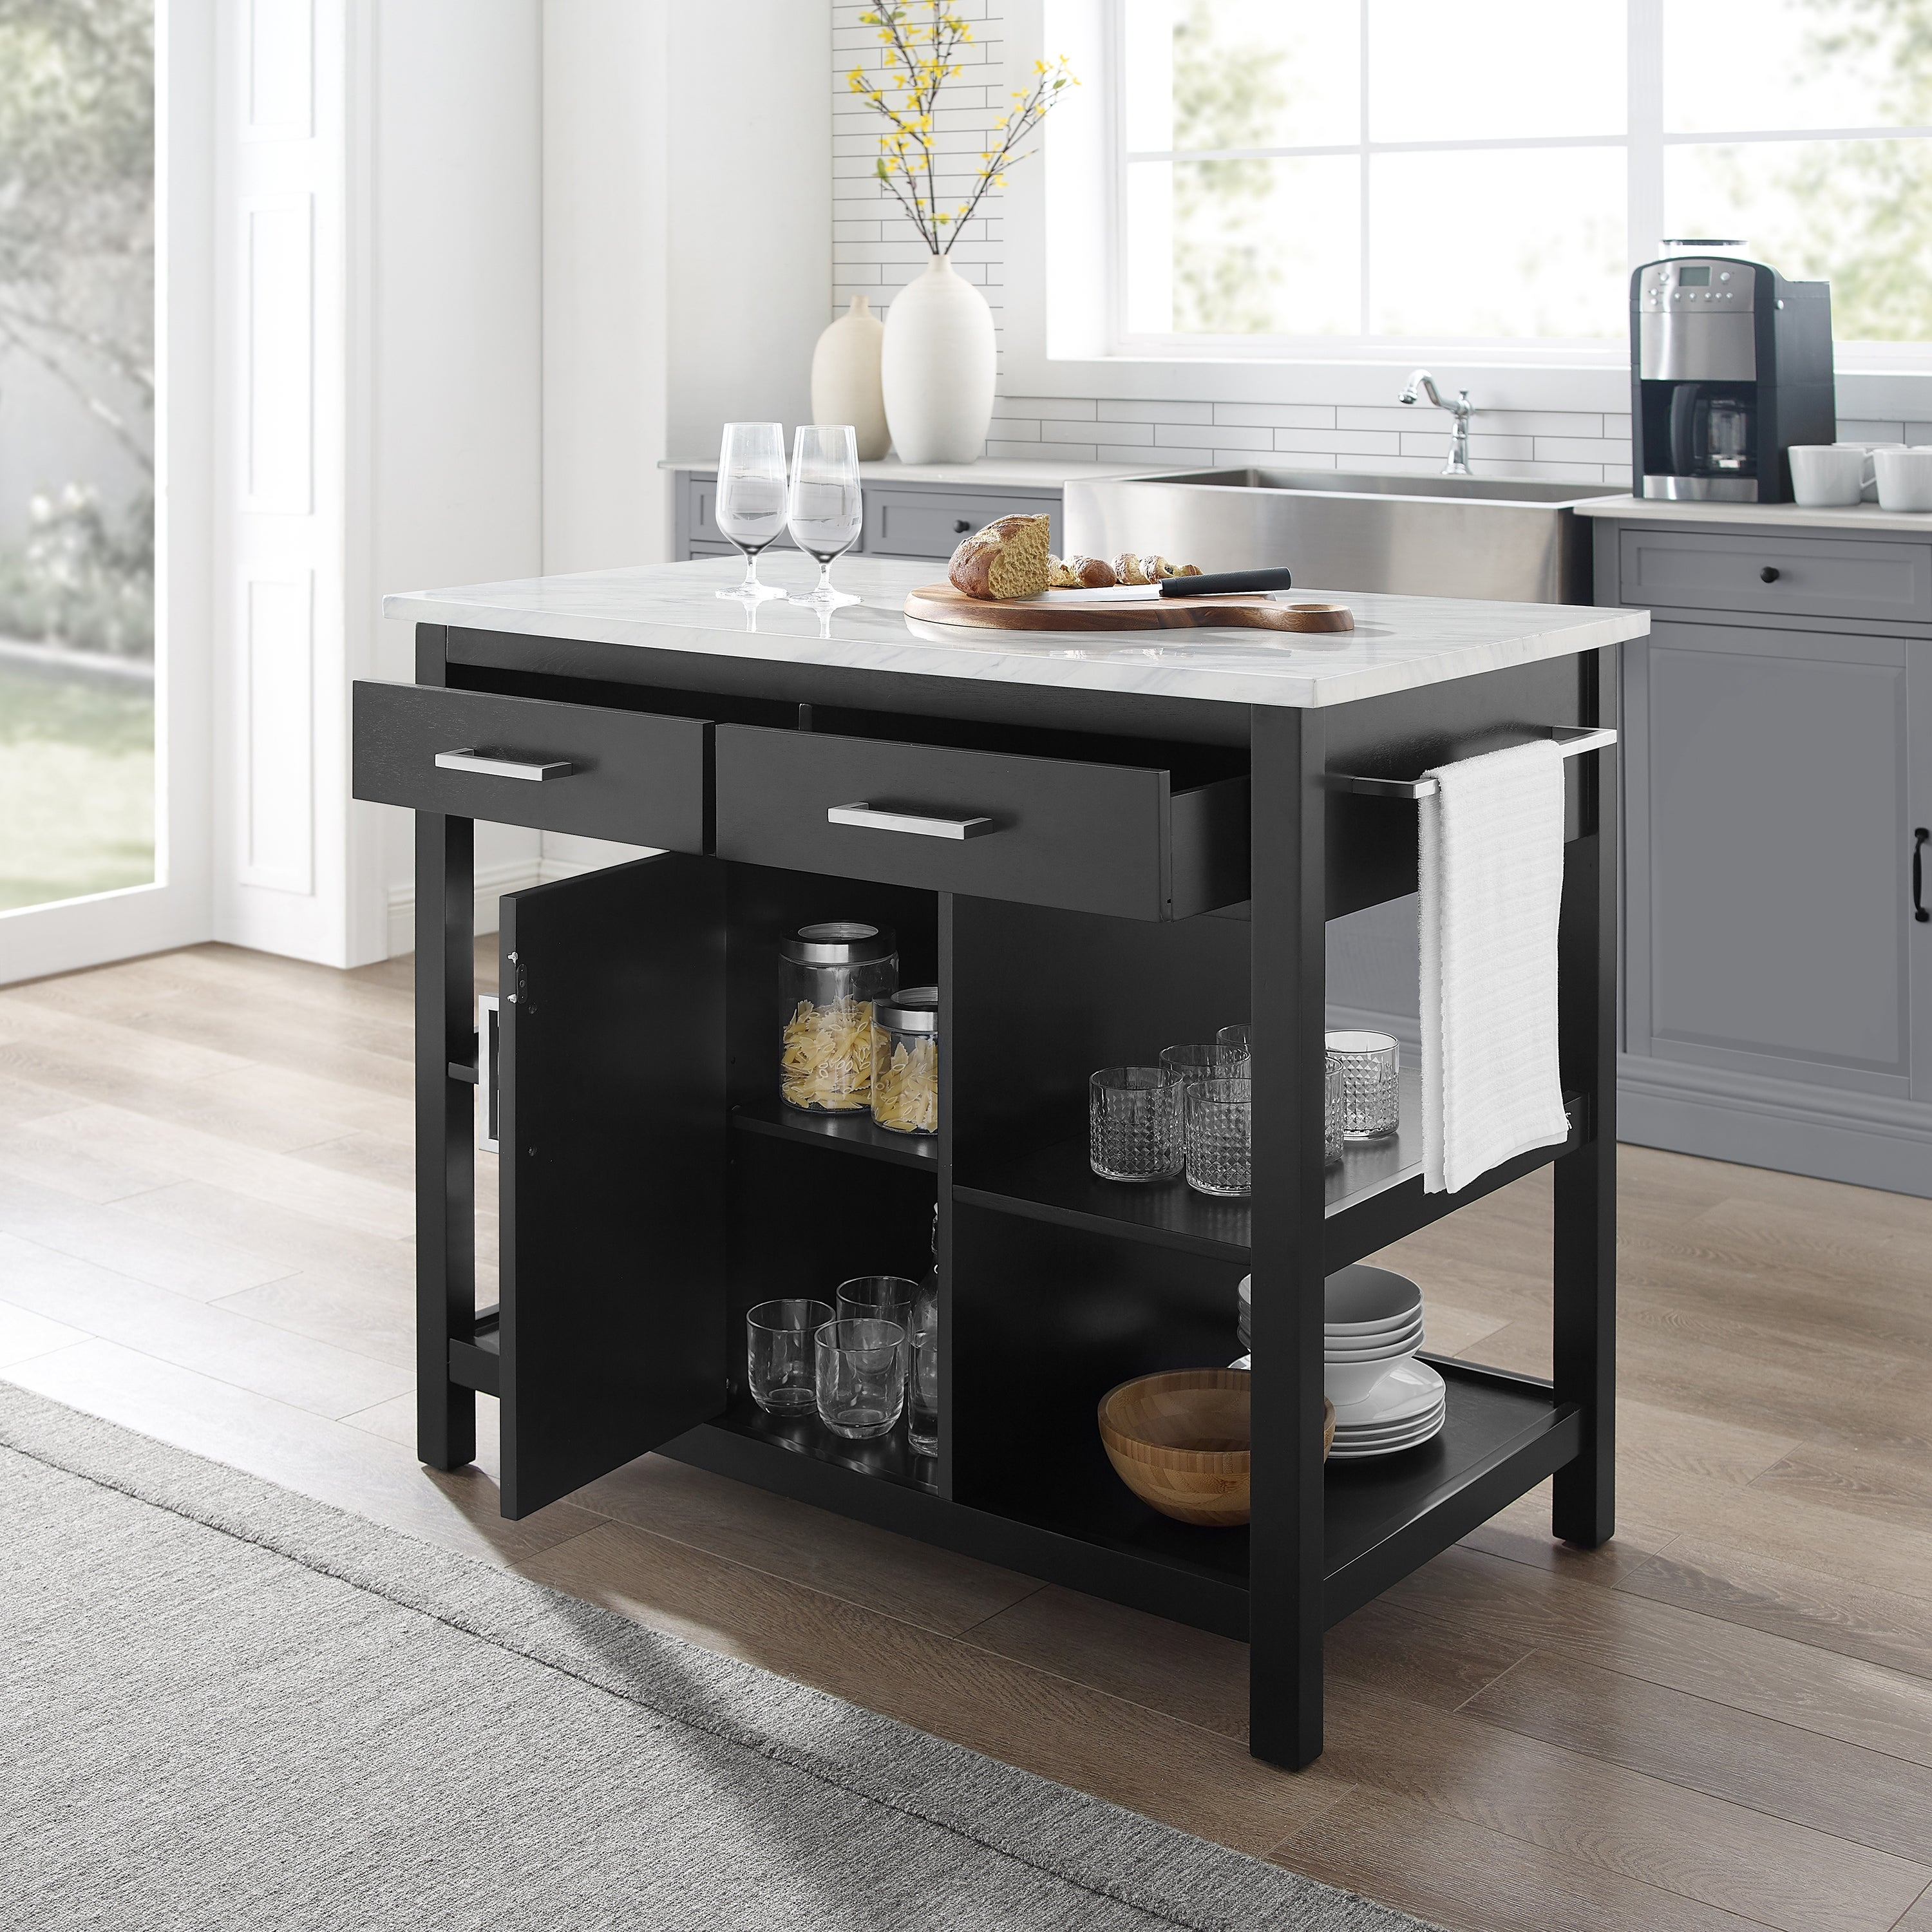 Audrey Black With Faux Marble Top Kitchen Island 42 W X 23 5 D X 36 H On Sale Overstock 31290659